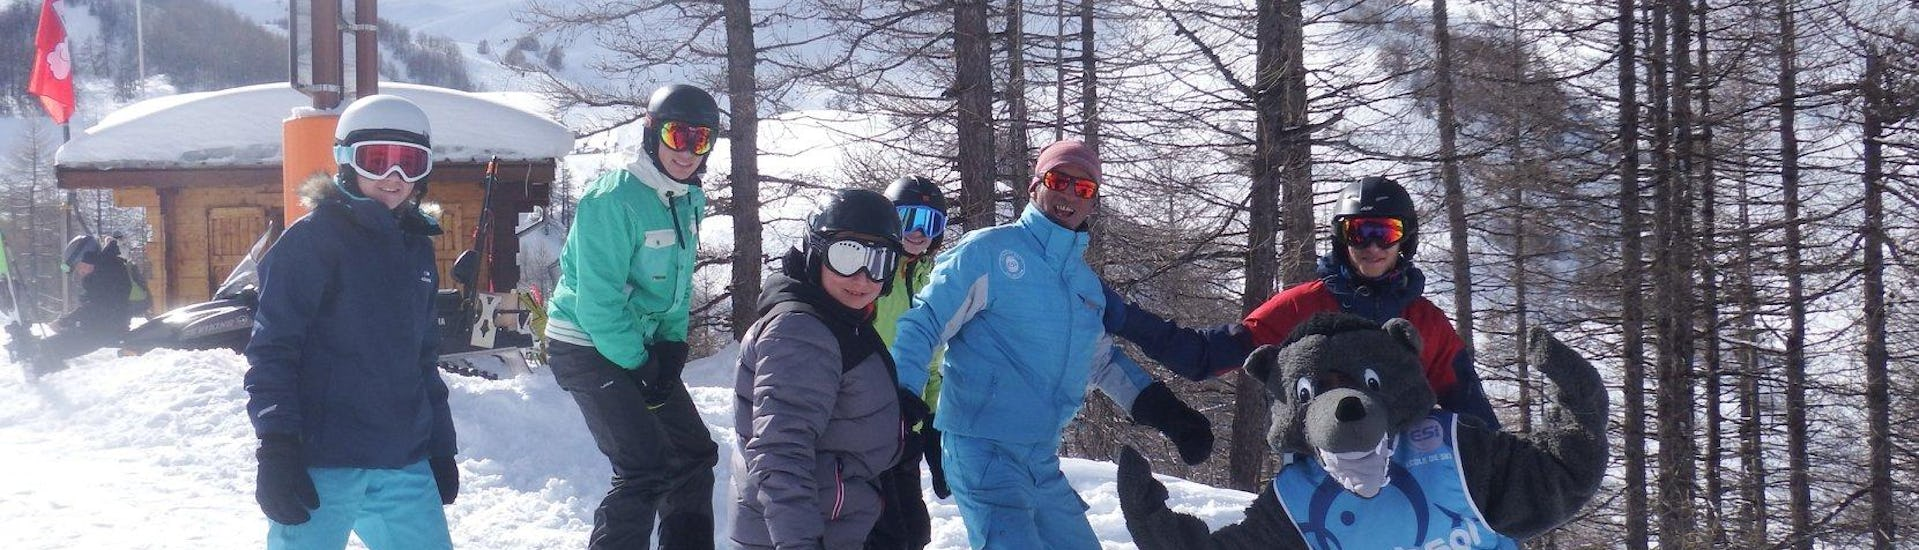 Snowboard Lessons (from 10 years) - Holiday